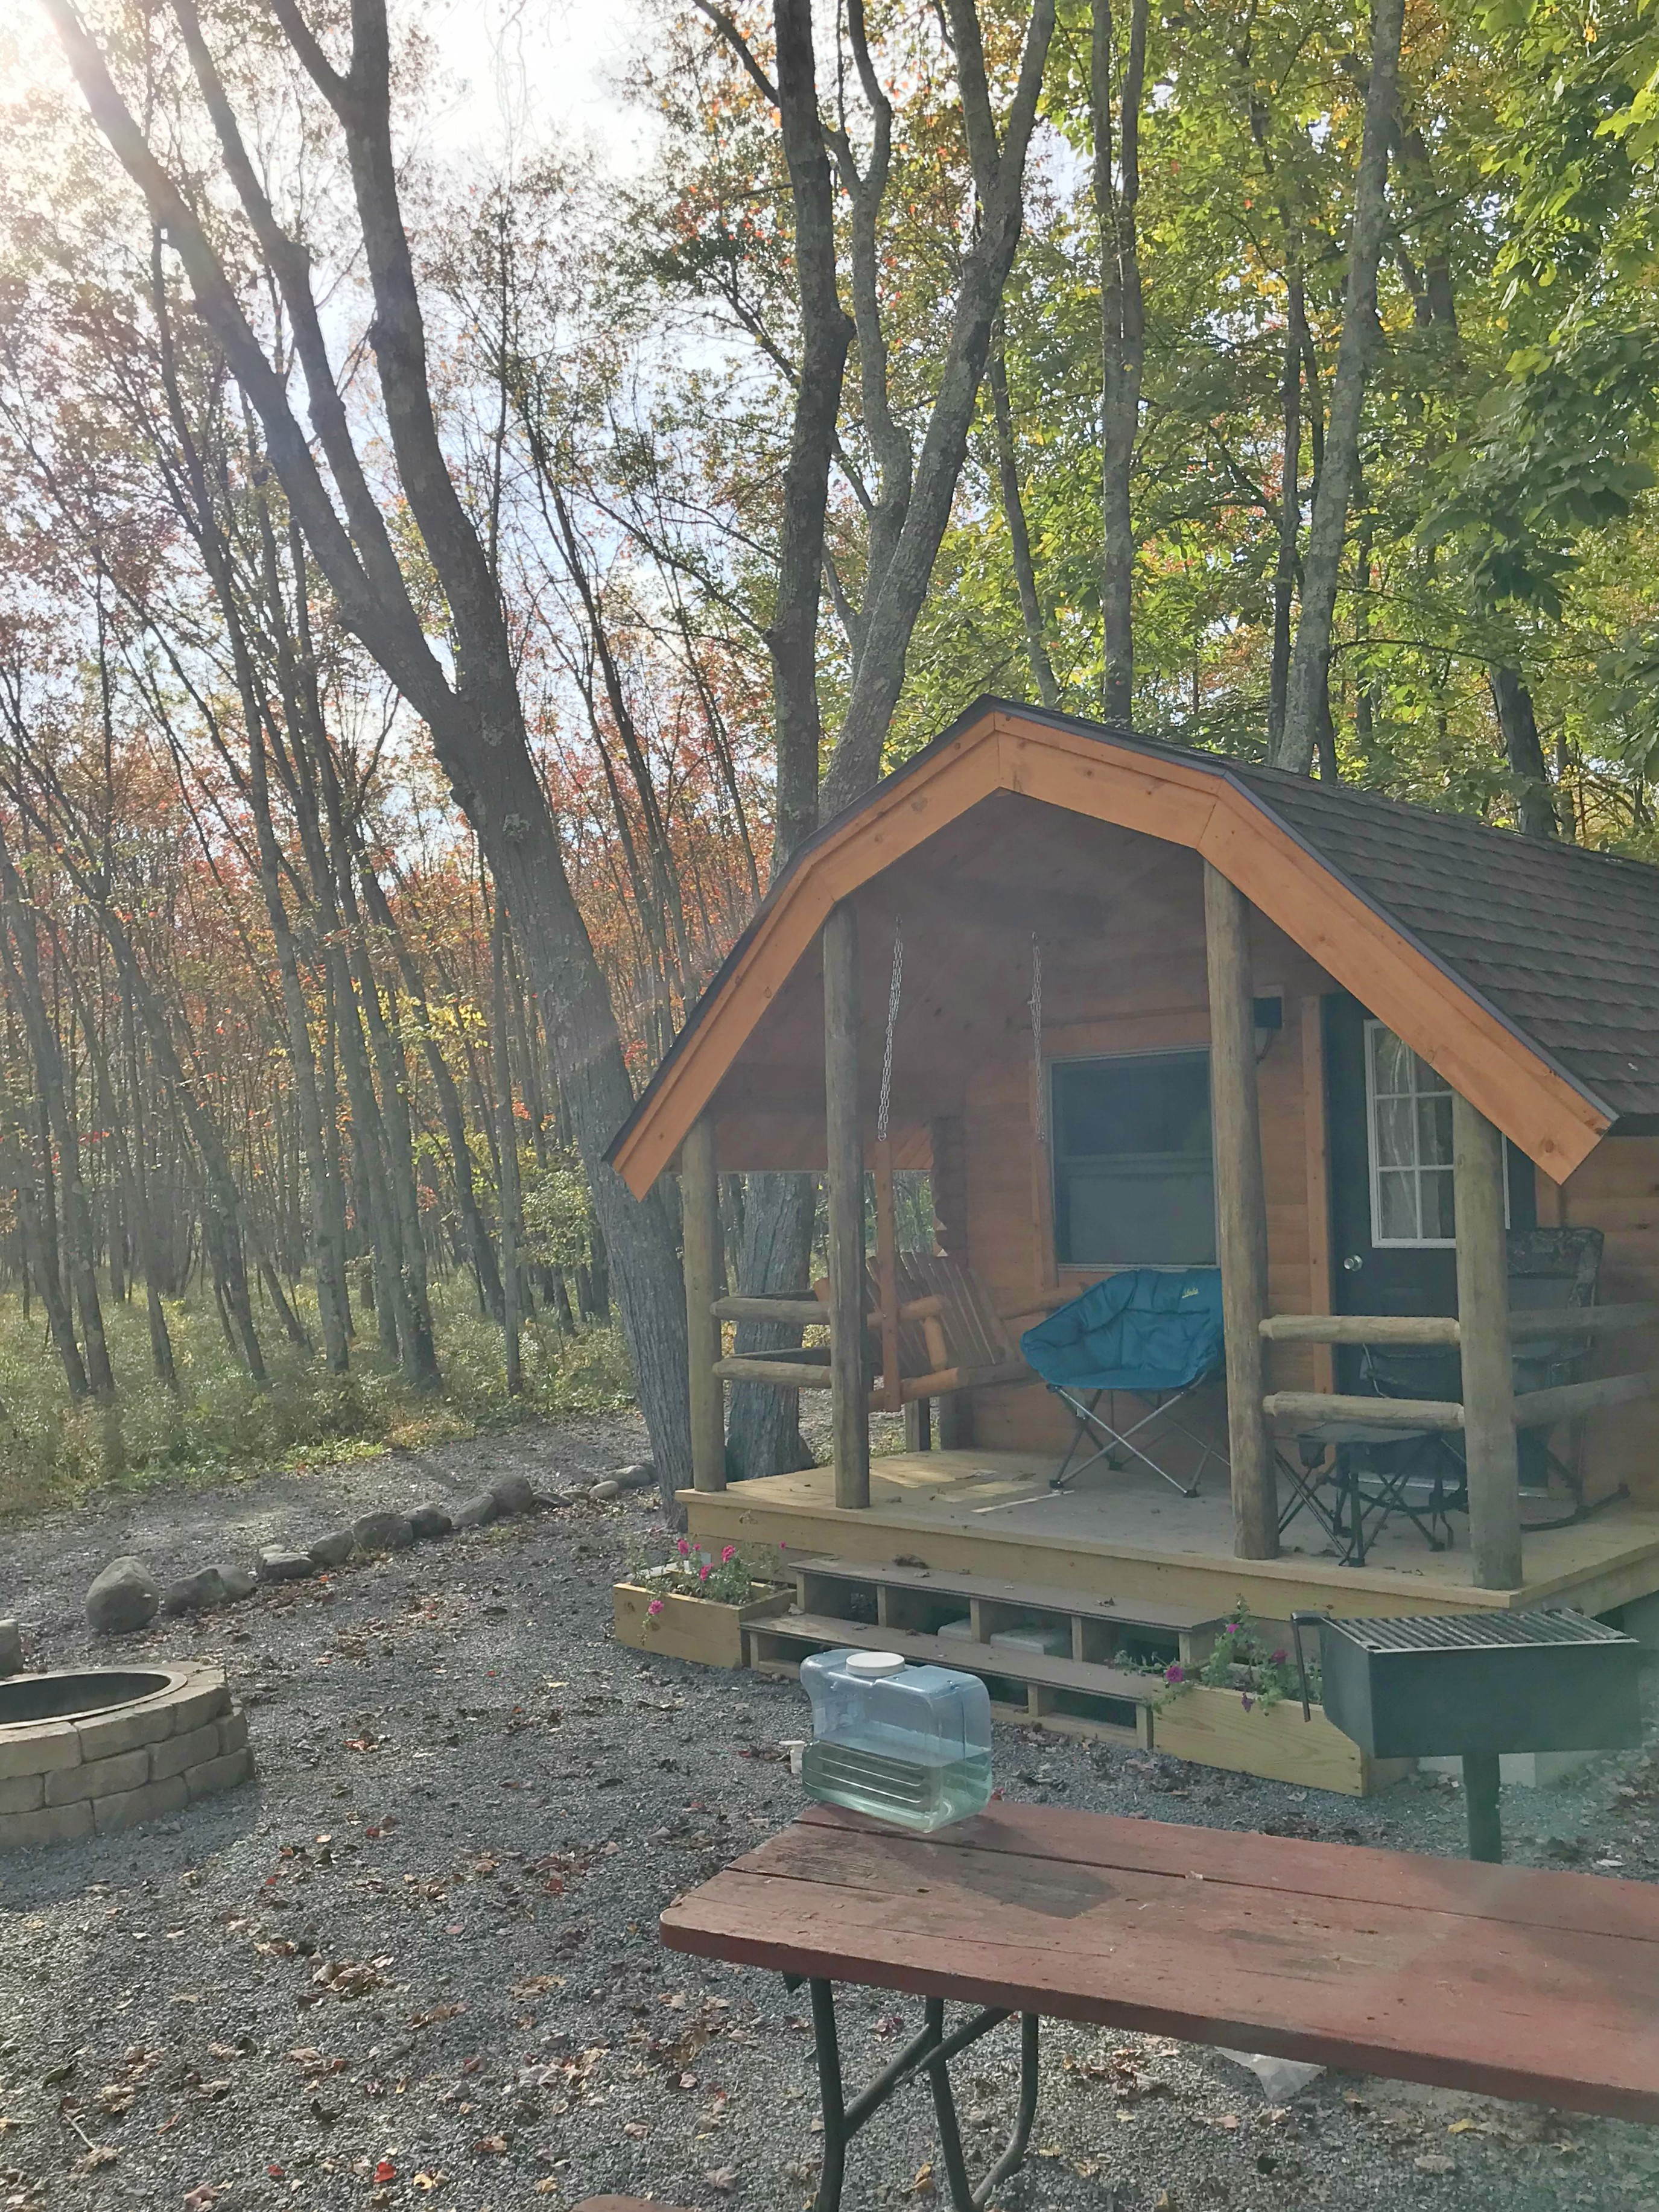 pennsylvania camp at new pocono for groups summer york jersey mountains rentals lohikan cabins htm and